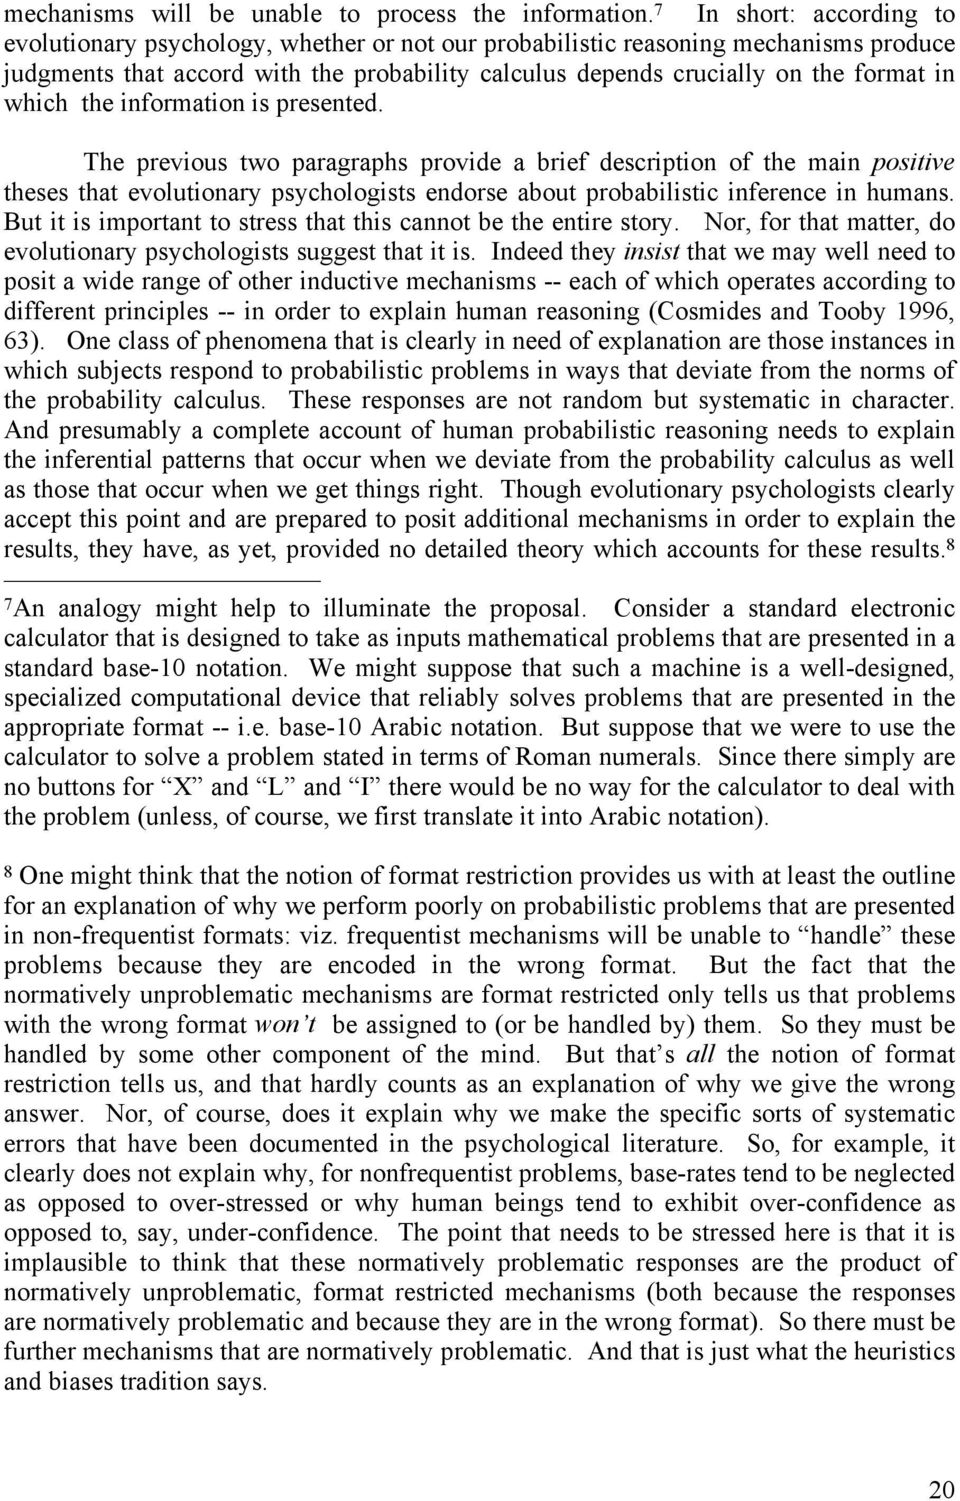 which the information is presented. The previous two paragraphs provide a brief description of the main positive theses that evolutionary psychologists endorse about probabilistic inference in humans.